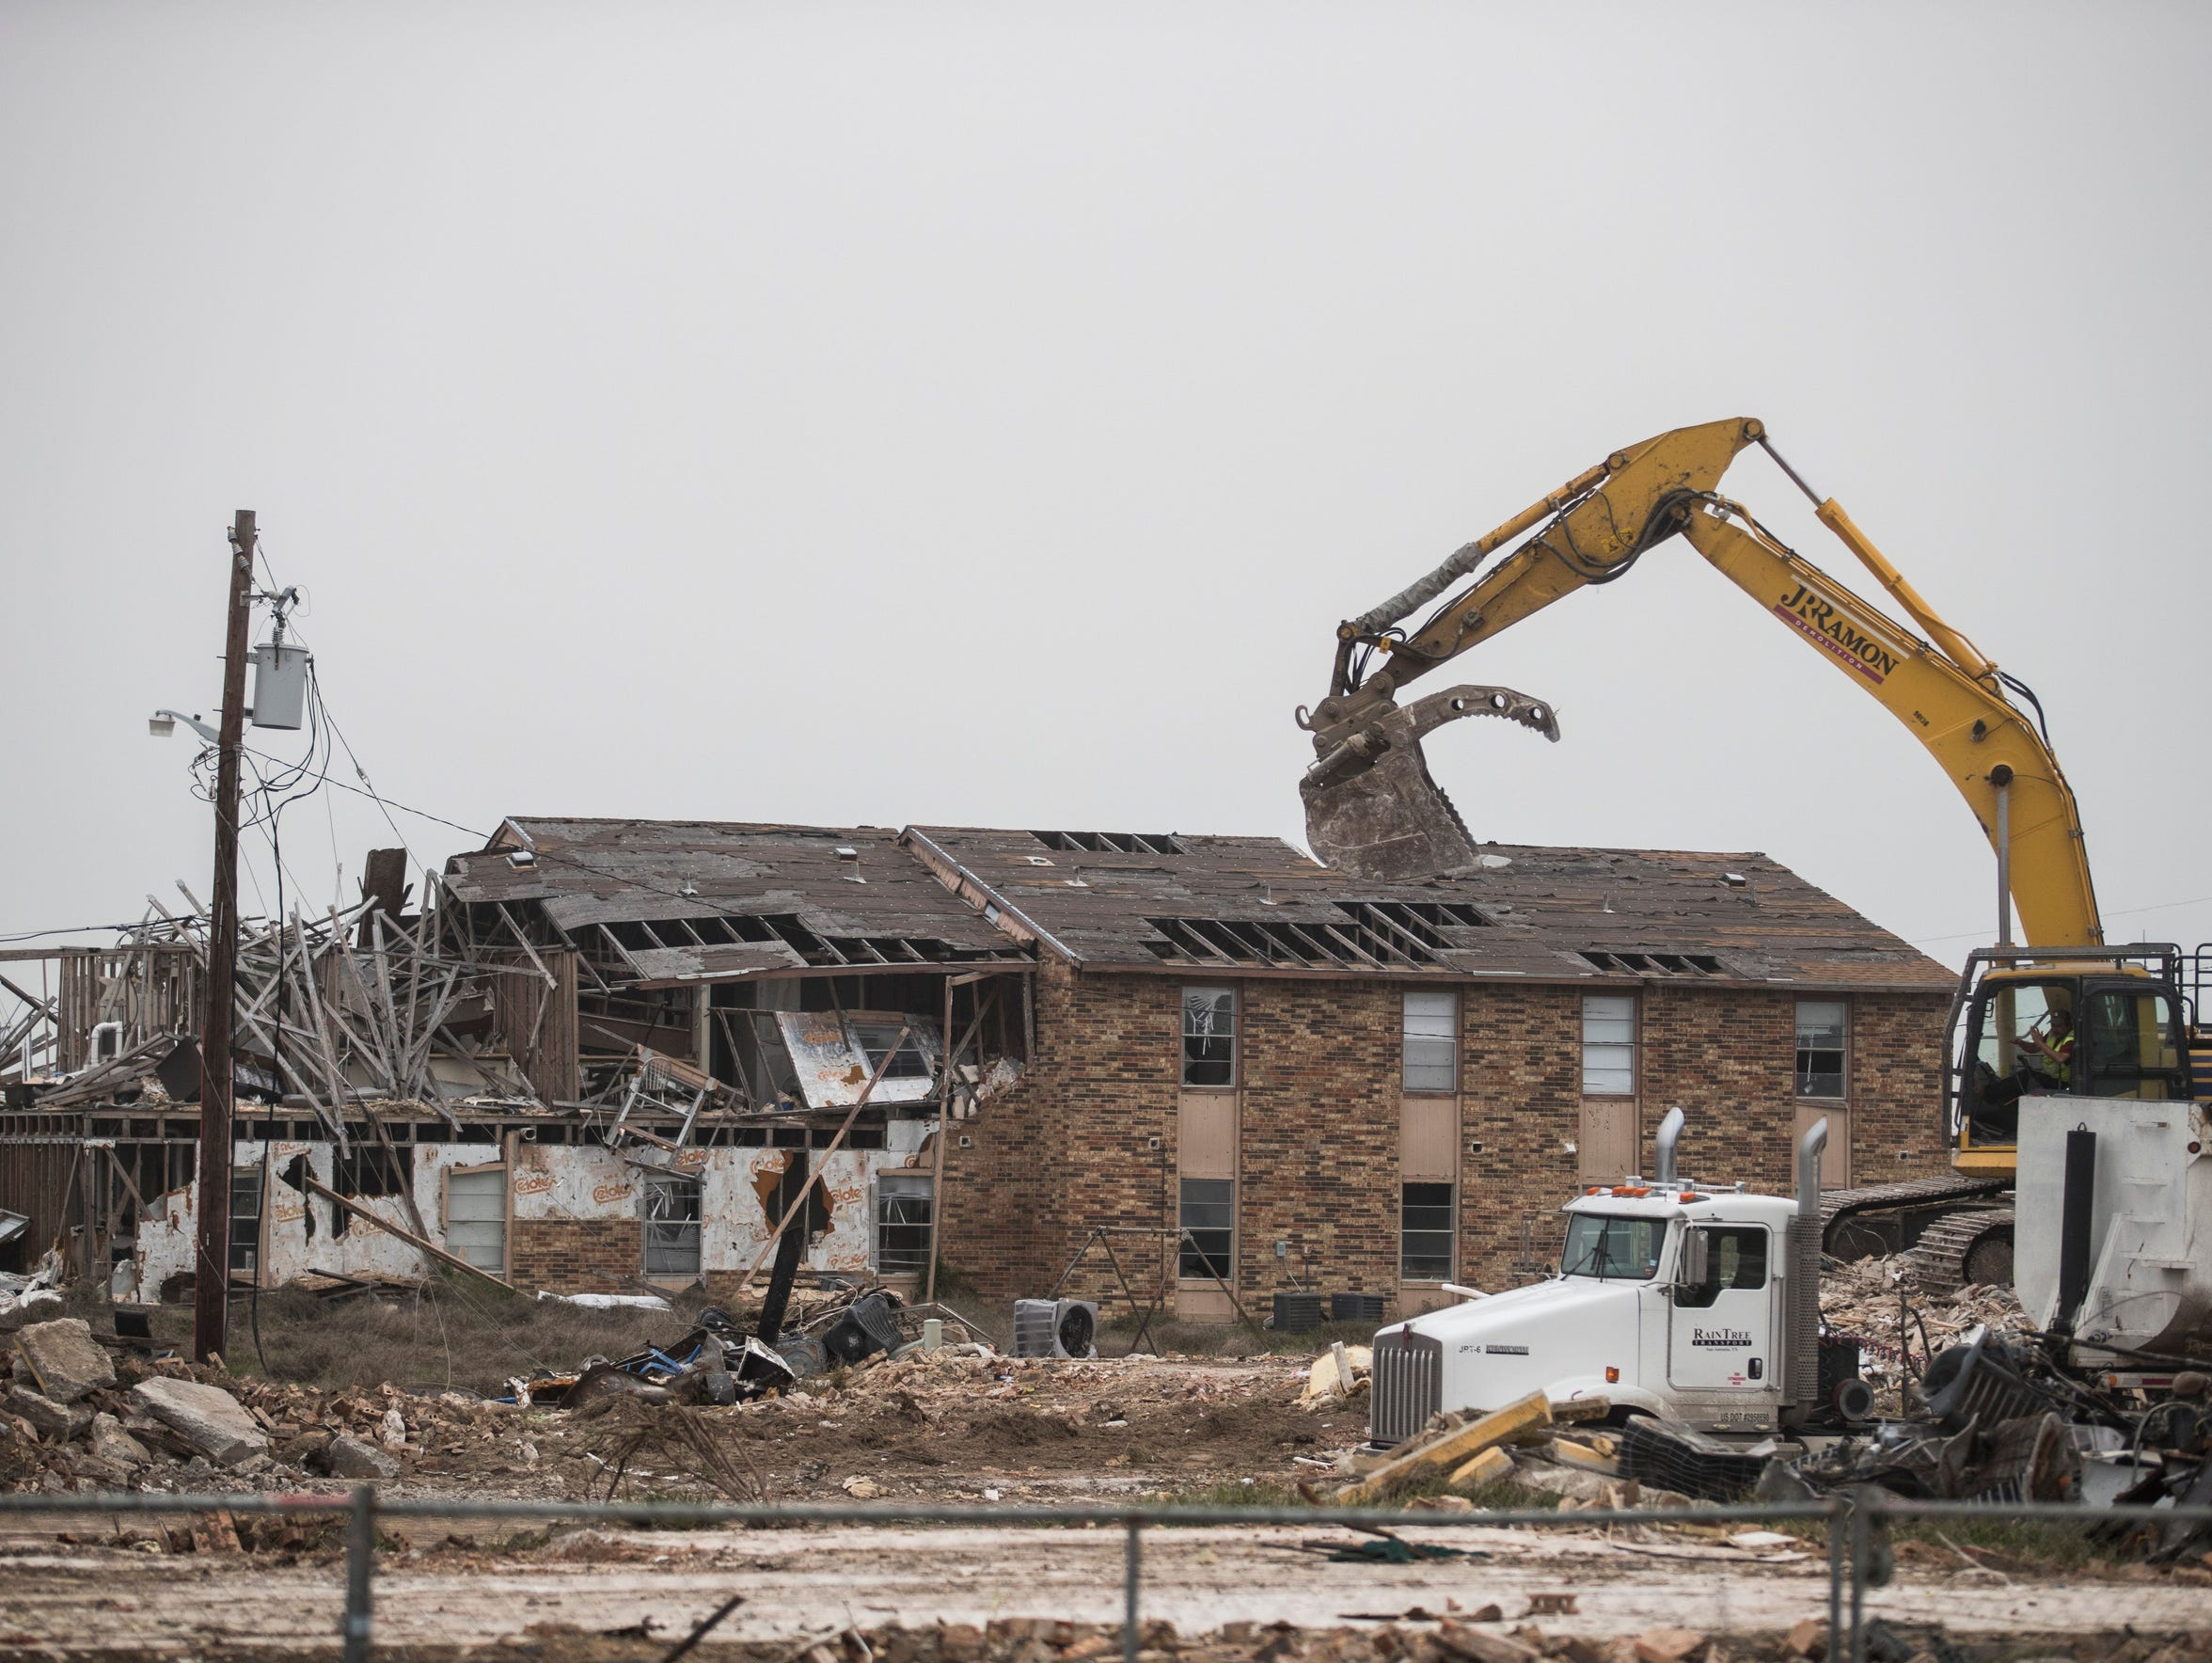 Contractors demolish an apartment complex on Tuesday Feb. 20, 2018, in Rockport. The building was severely damaged by Hurricane Harvey.